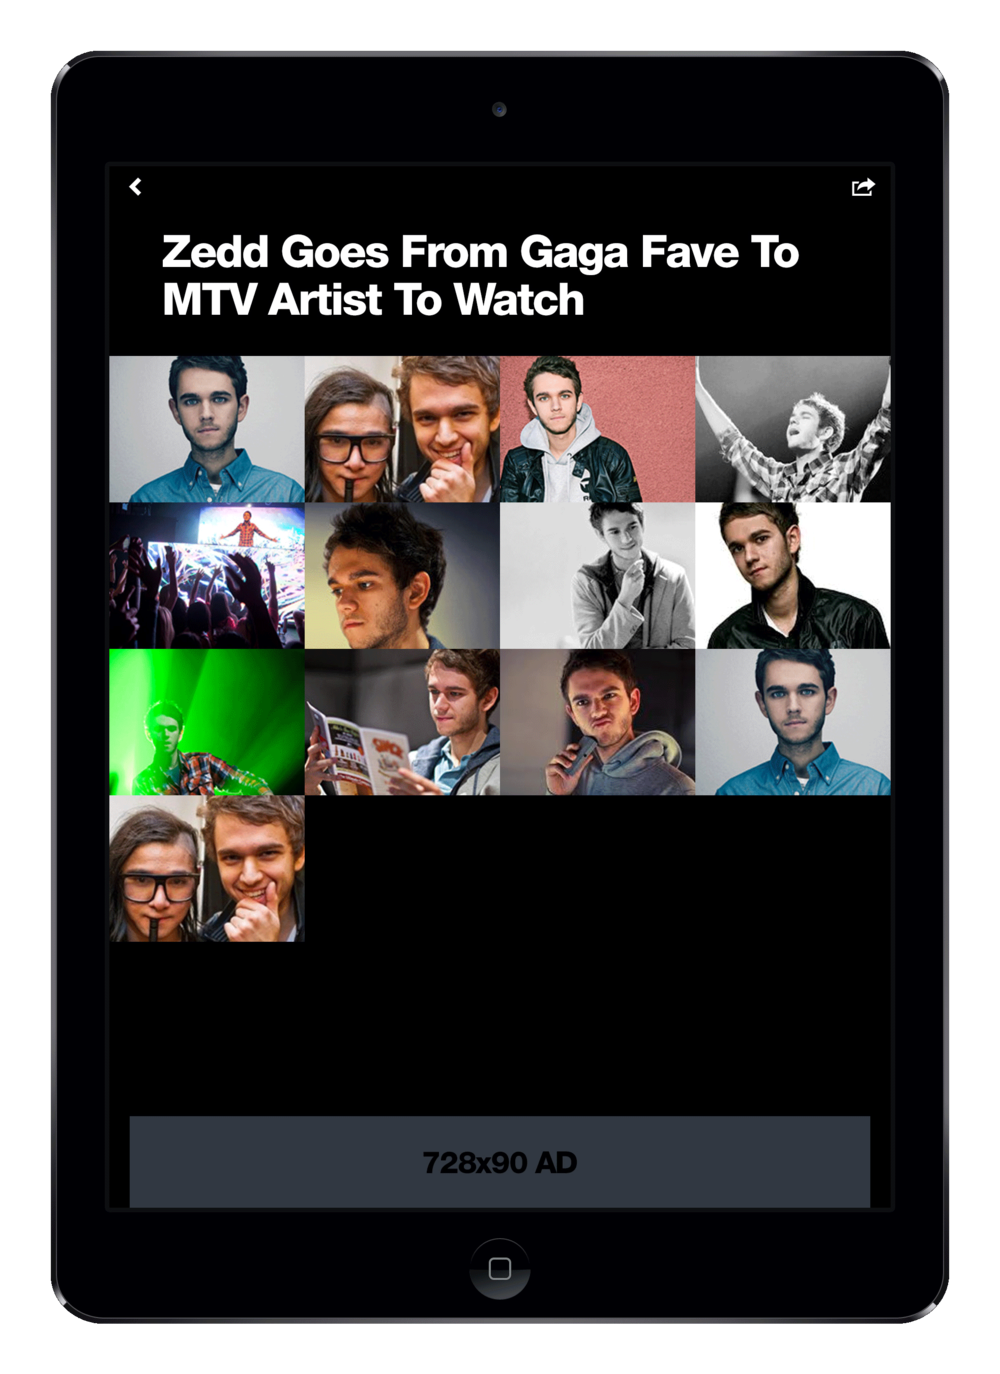 mtv-news-ipad-screens-06.png